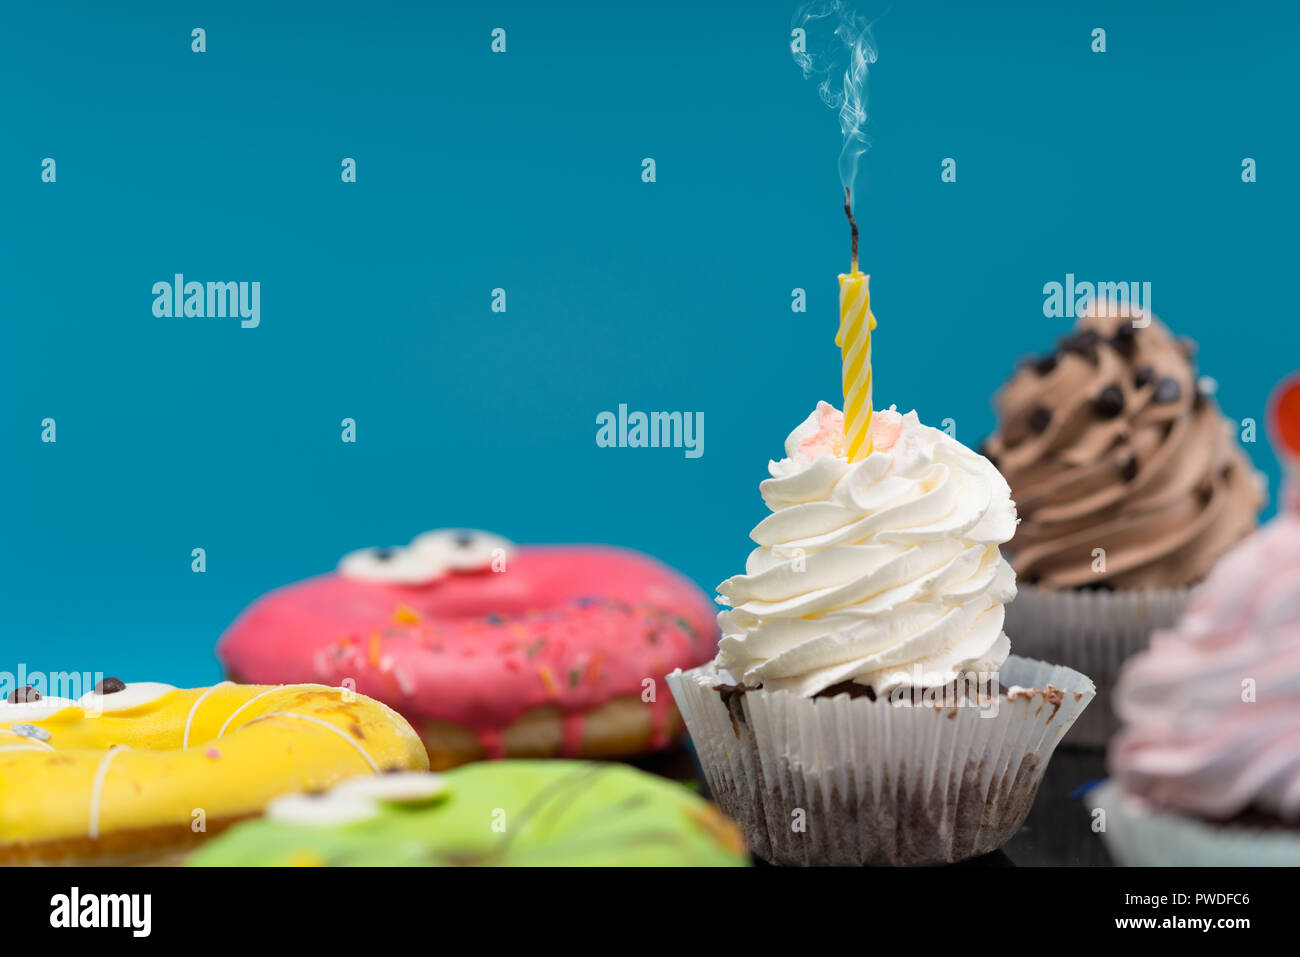 Party treats with fresh cupcakes and colorful iced ring donuts over a blue background with copy space - Stock Image